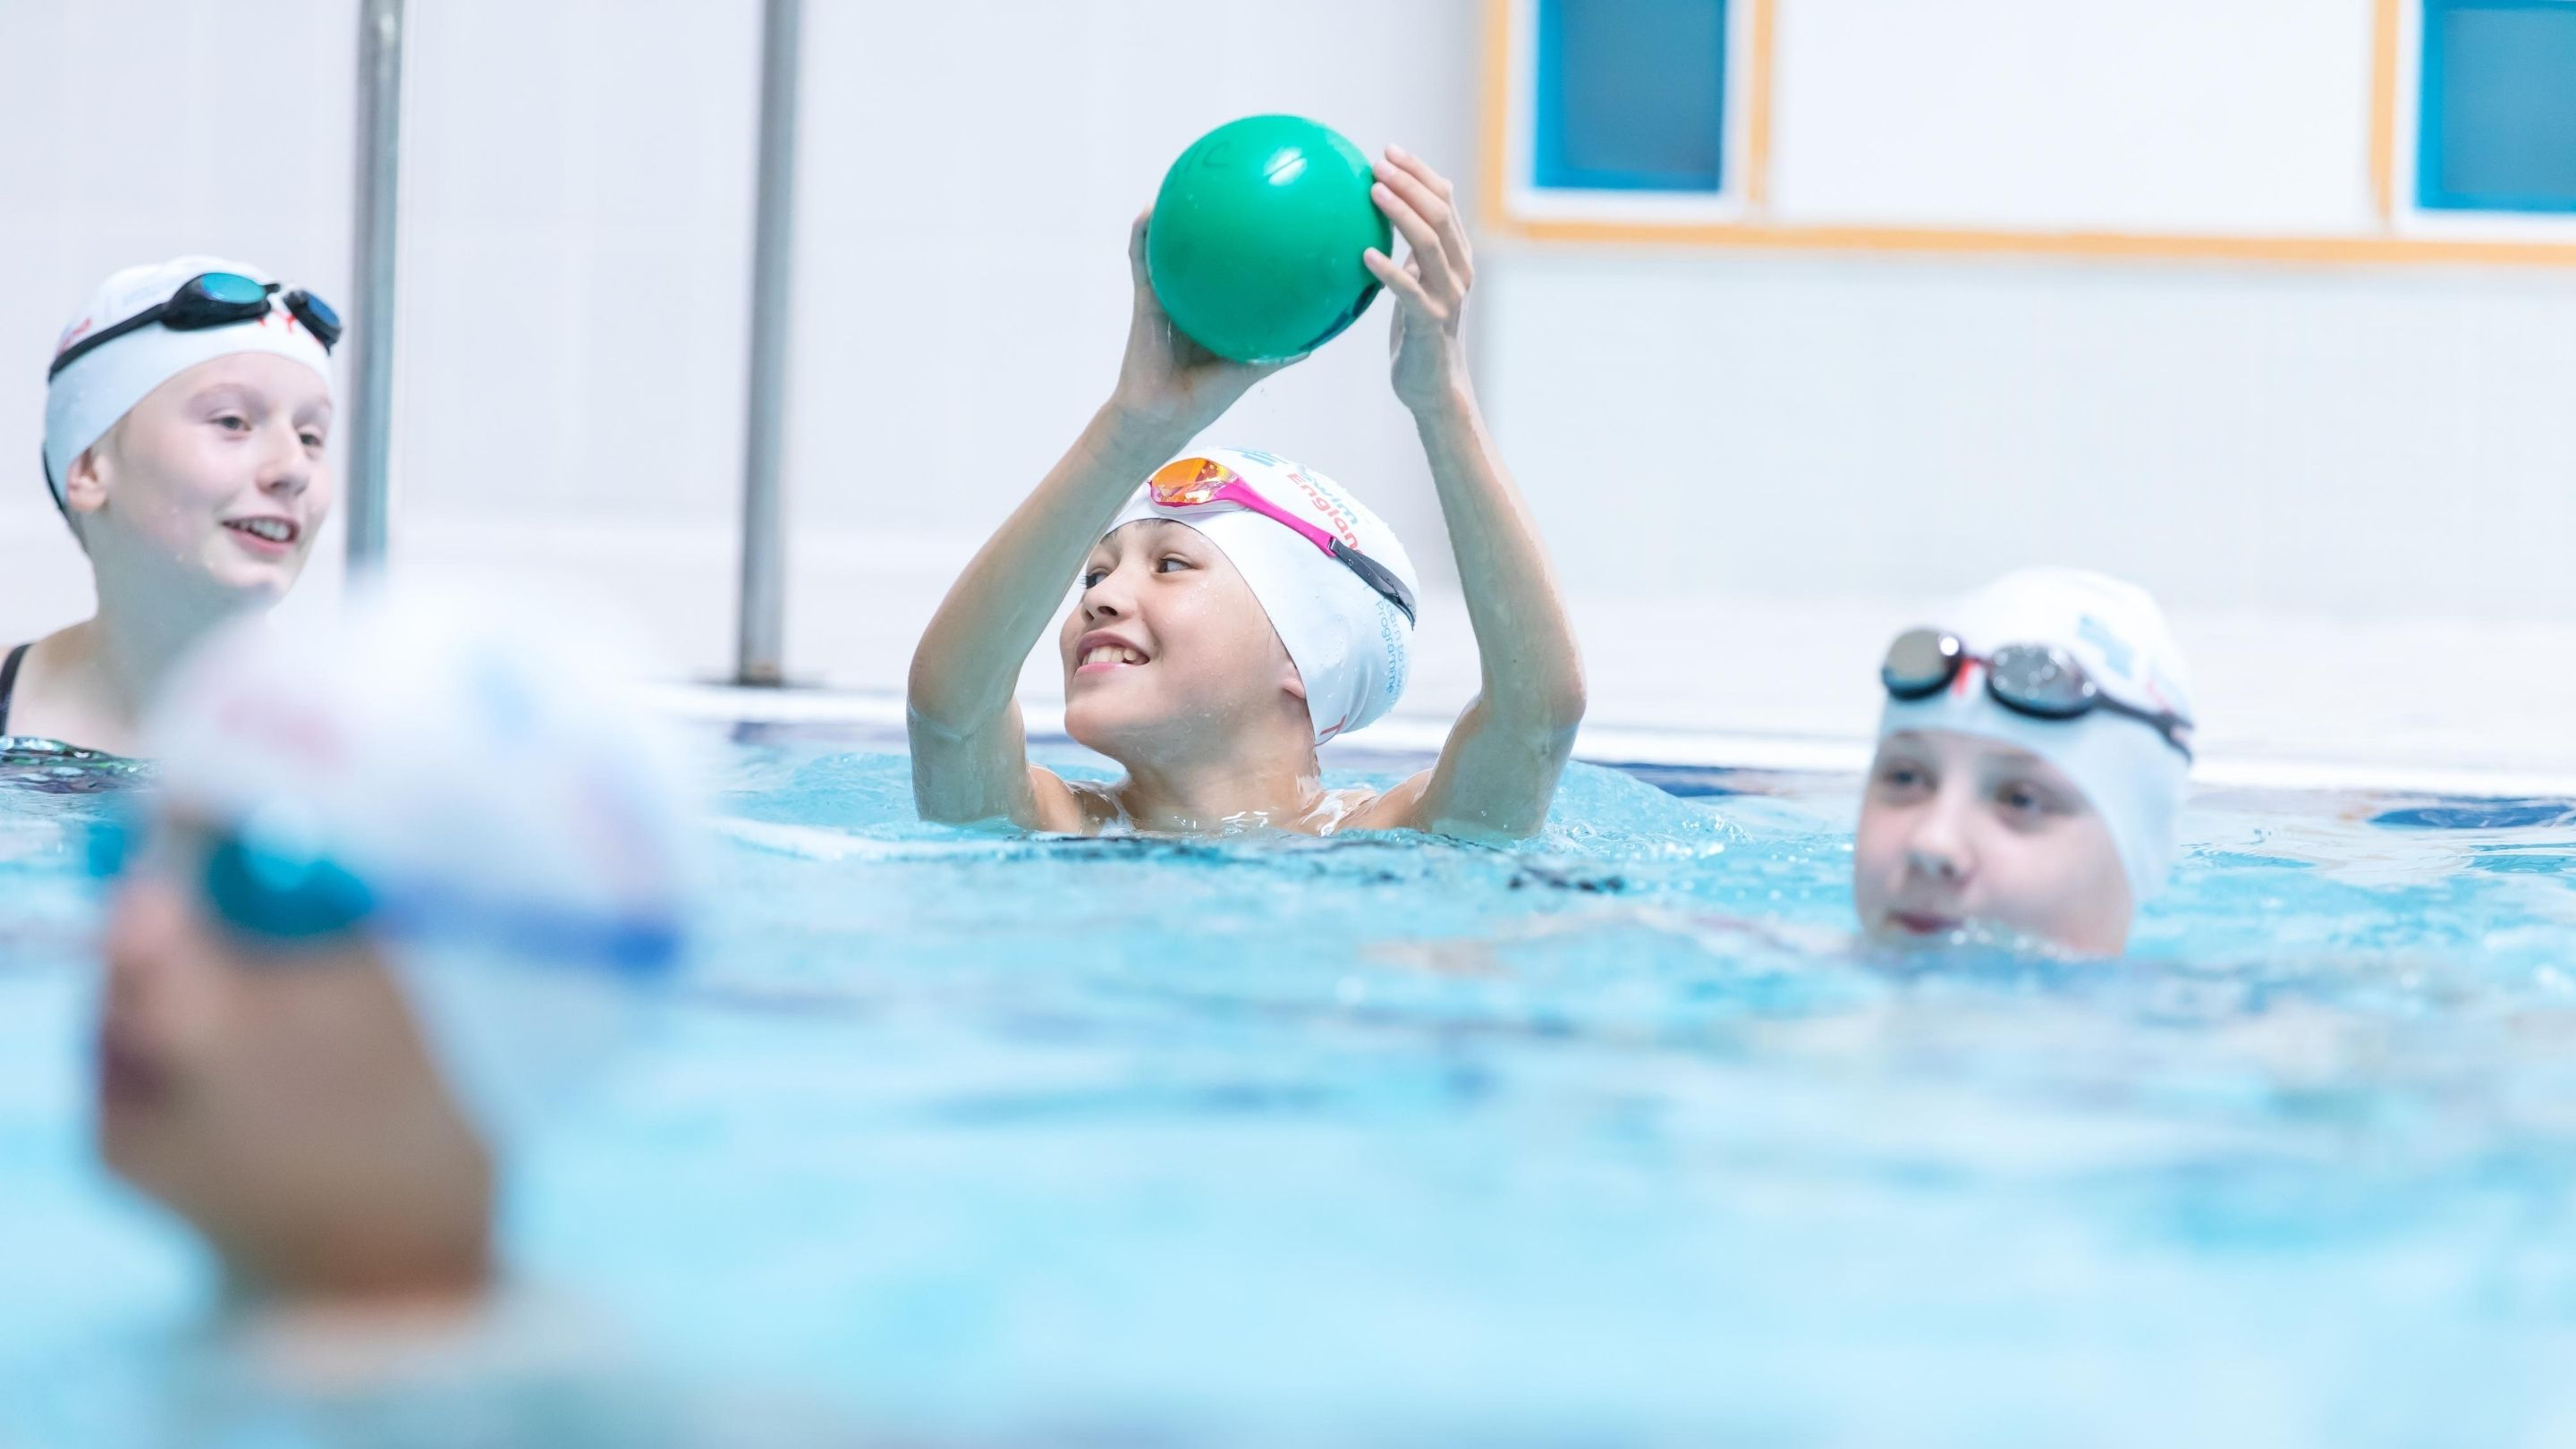 Swim England Aquatic Skills Framework Stages 8-10 Water Polo